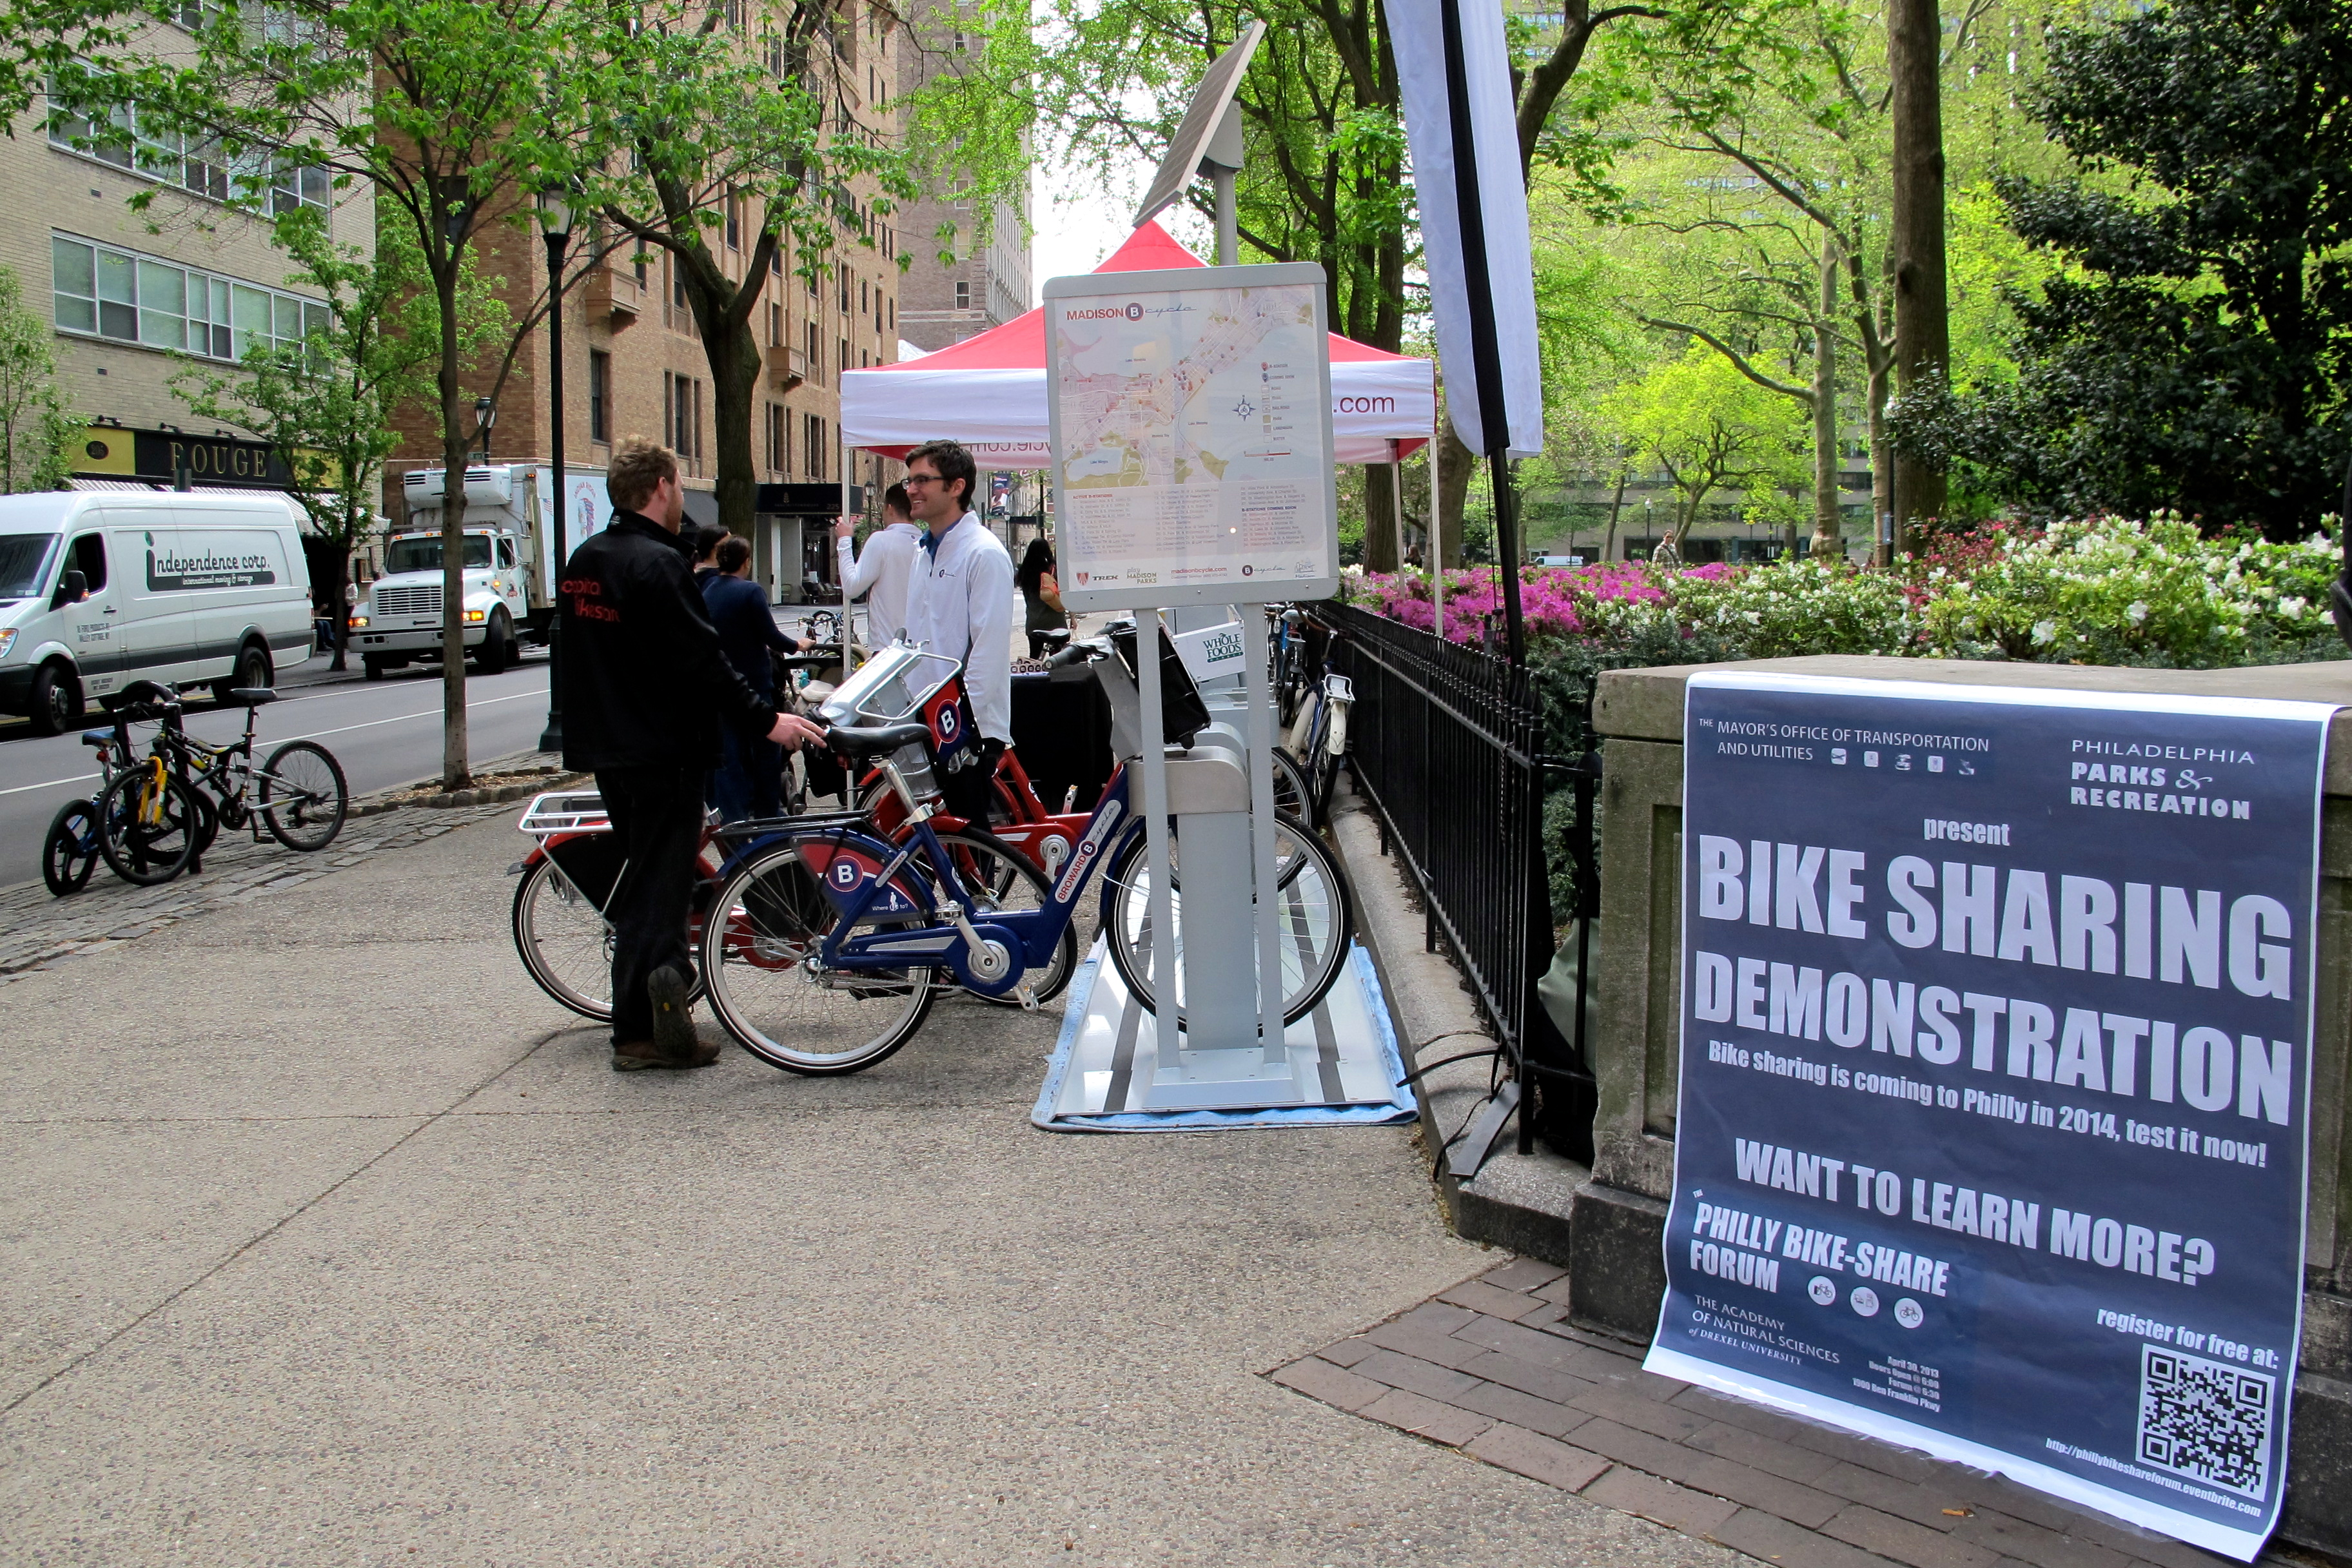 Bike sharing demo today at 18th and Walnut.